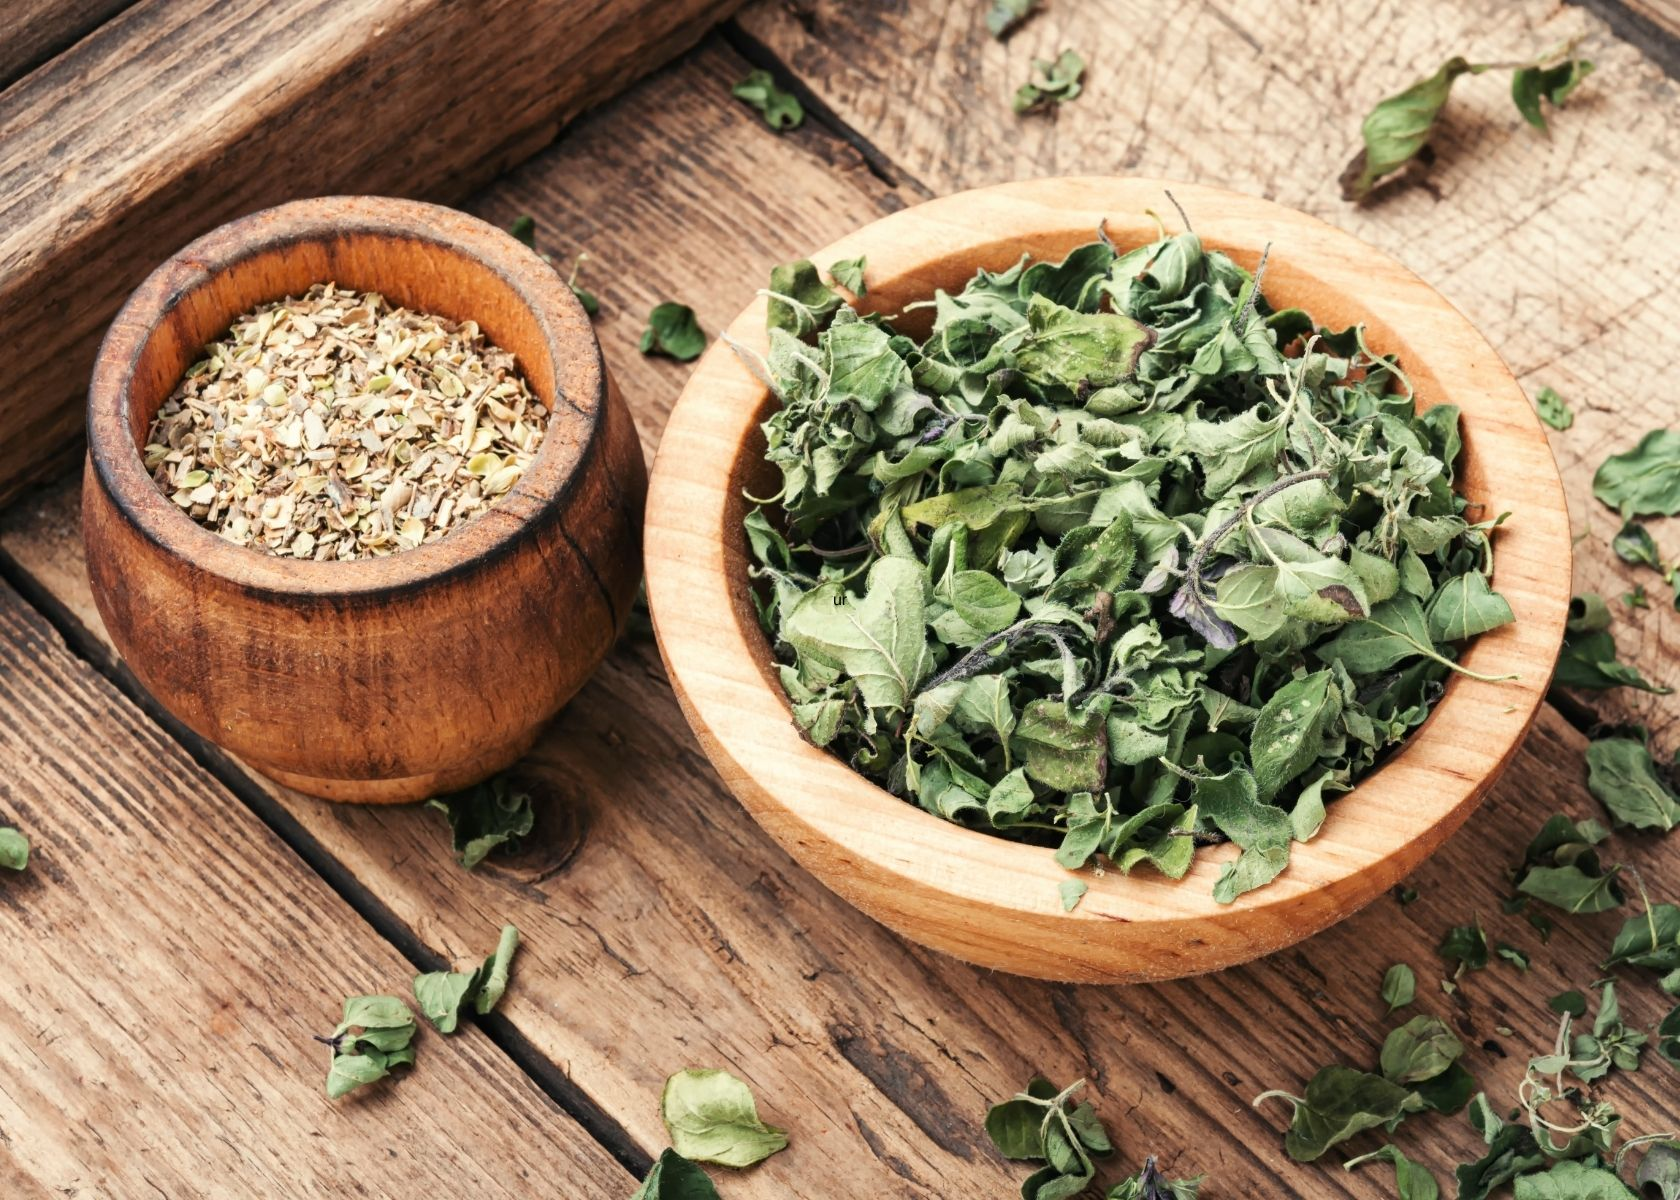 Wooden bowls of dried marjoram and oregano on wooden table.